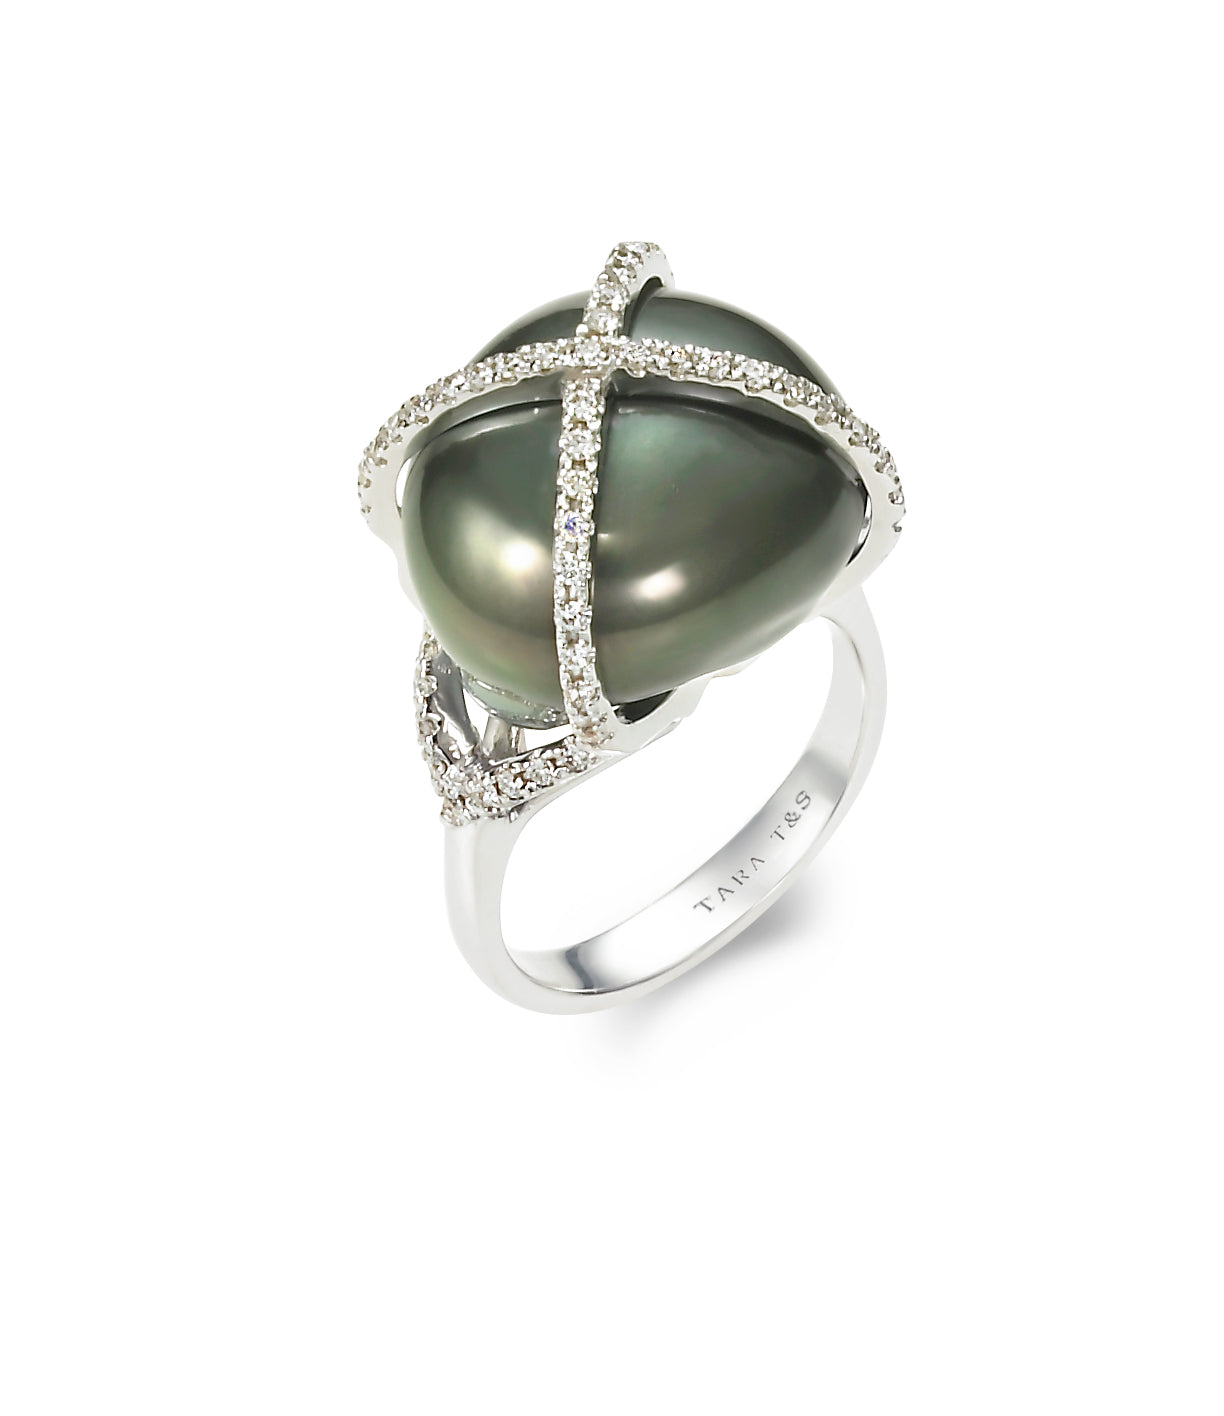 15-16mm Tahitian Pearl and Diamomd Ring